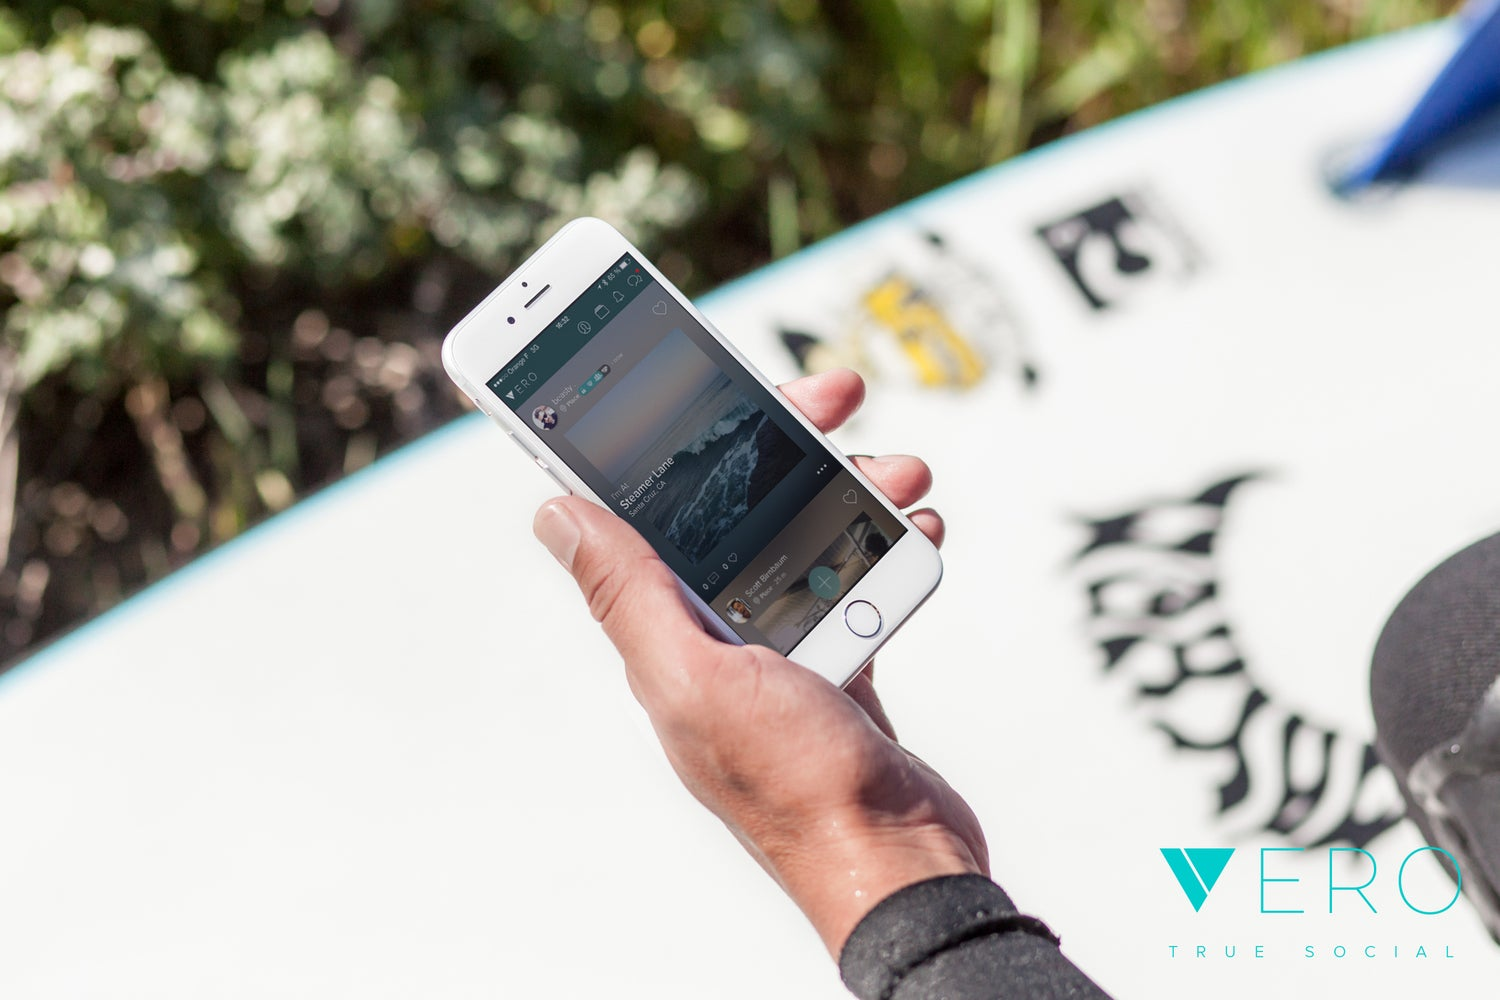 A hand holds a phone with the Vero app.